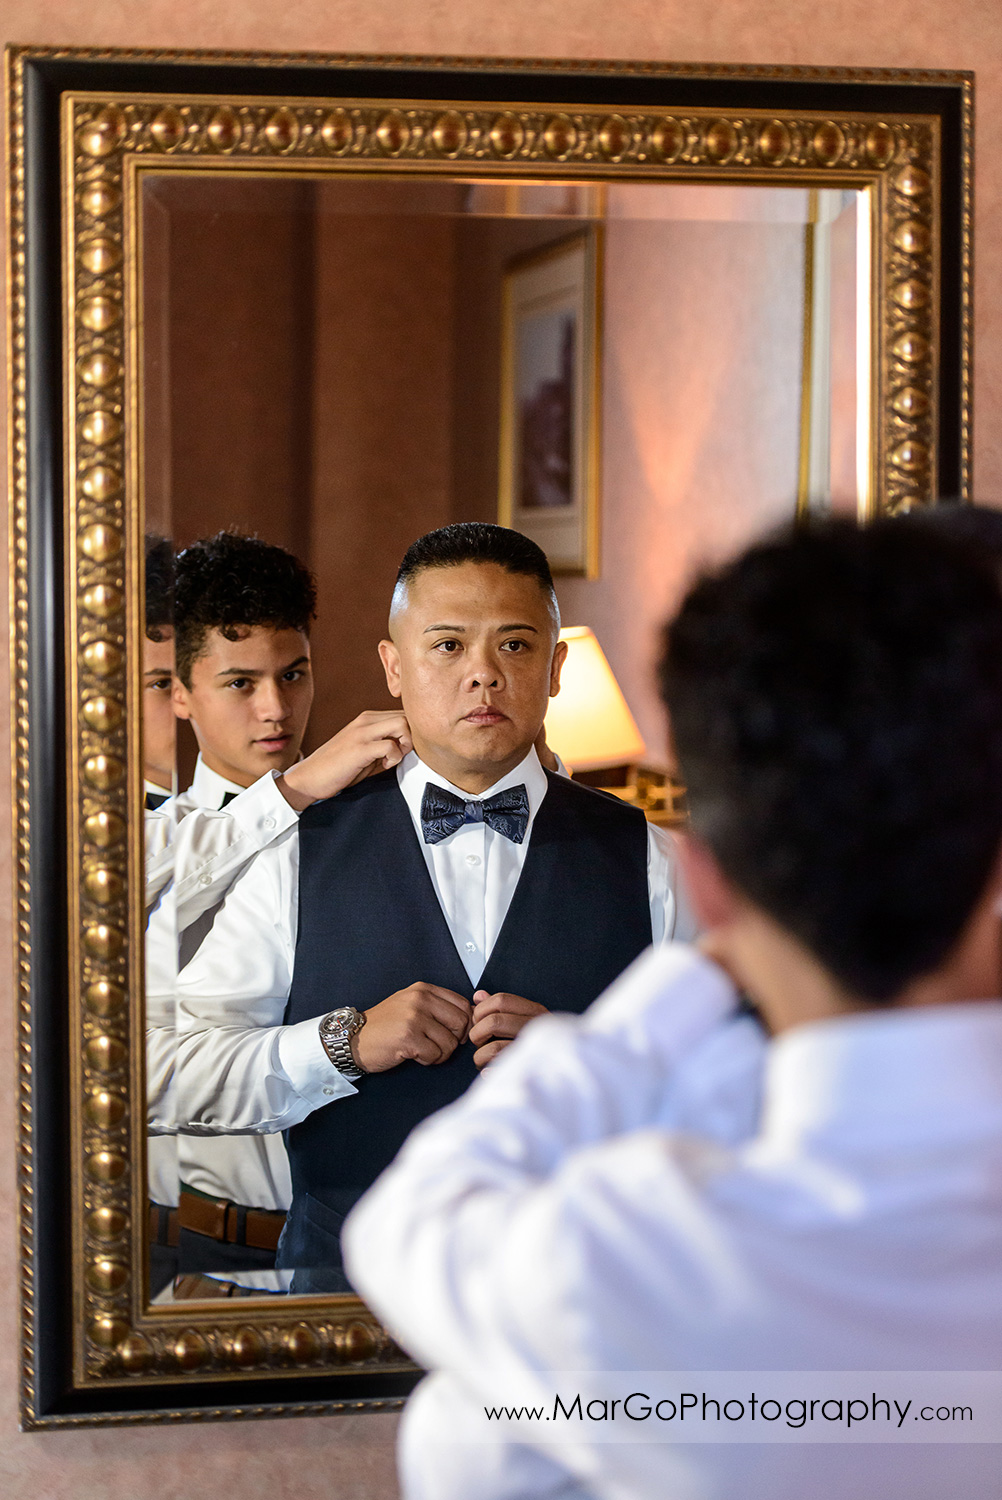 groom getting ready in front of the mirror at Whitcomb Hotel in San Francisco